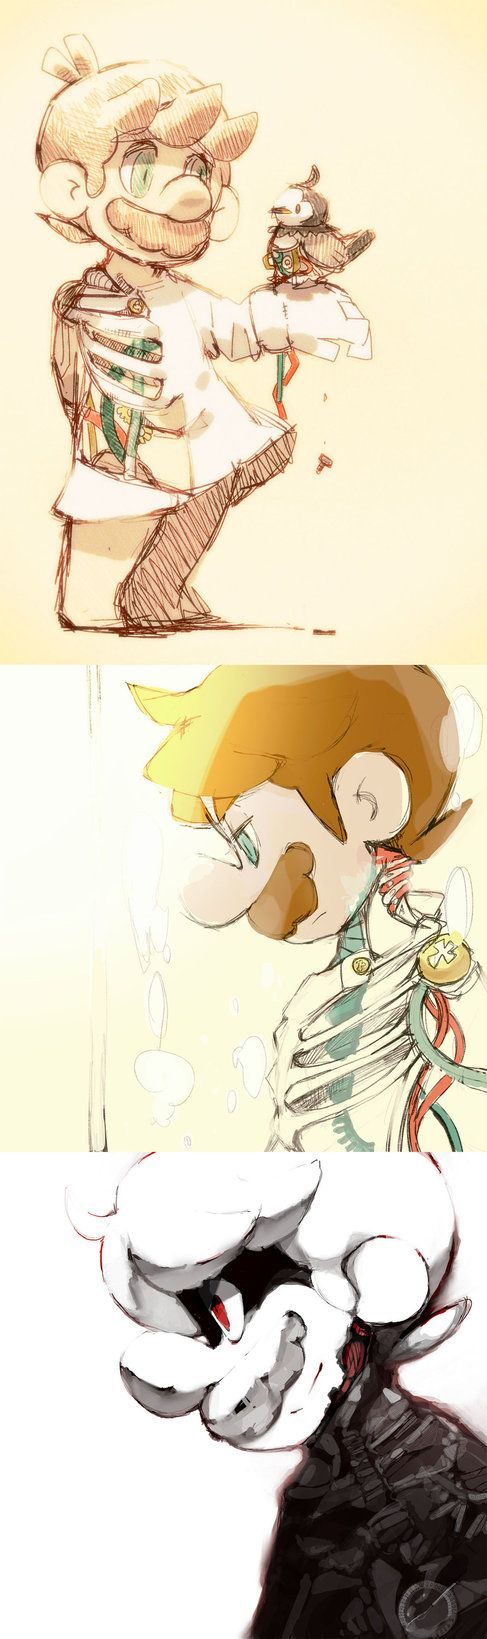 Mario's Data recovery in progress. by Uroad7 by Uroad7